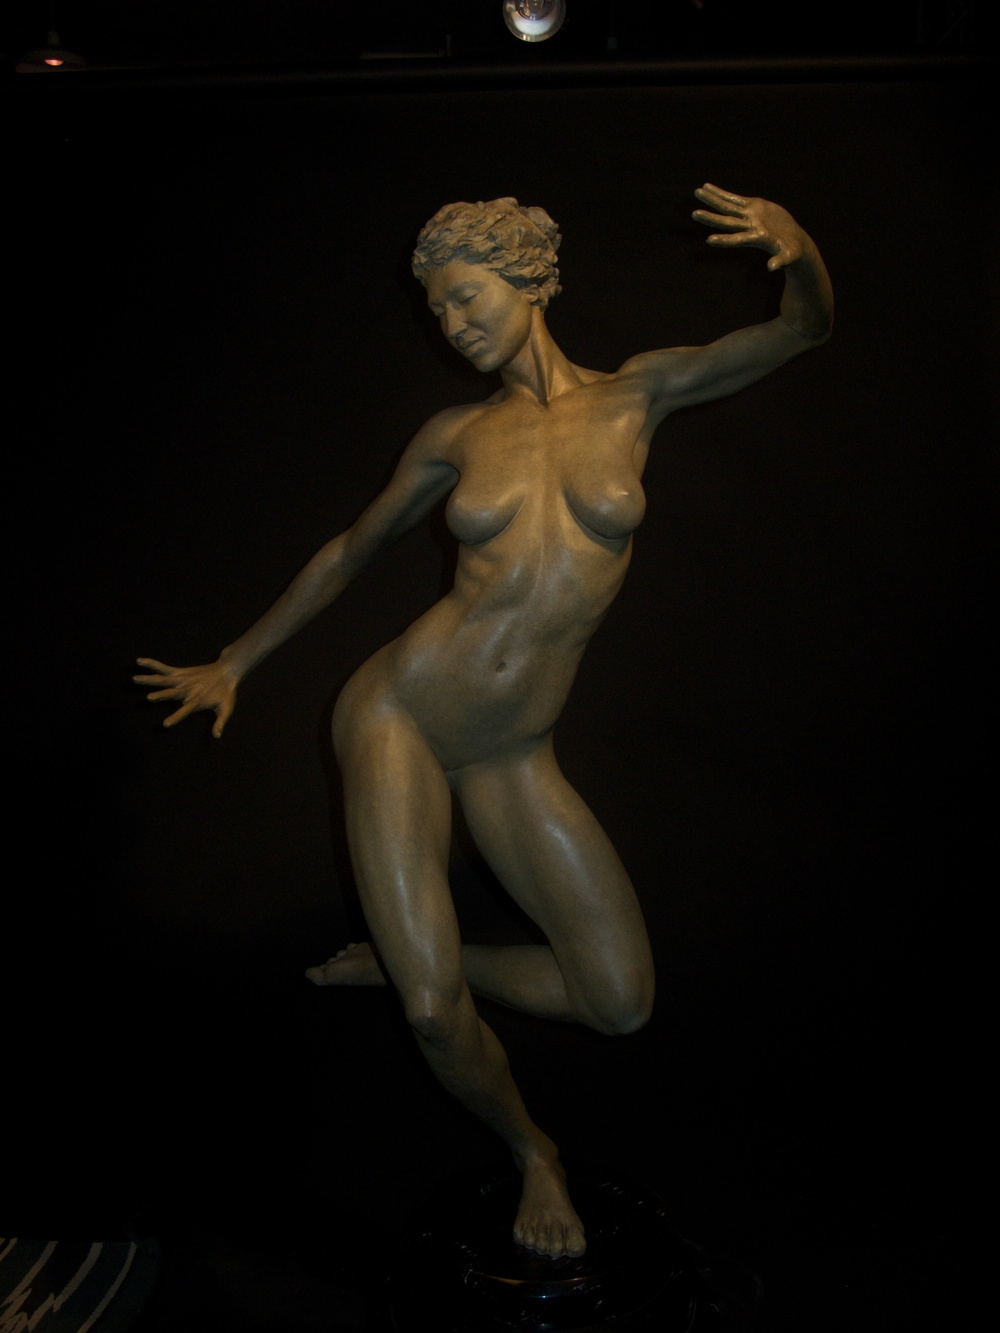 Deja • Bliss Dance • 0'x0' • Bronze • 2008